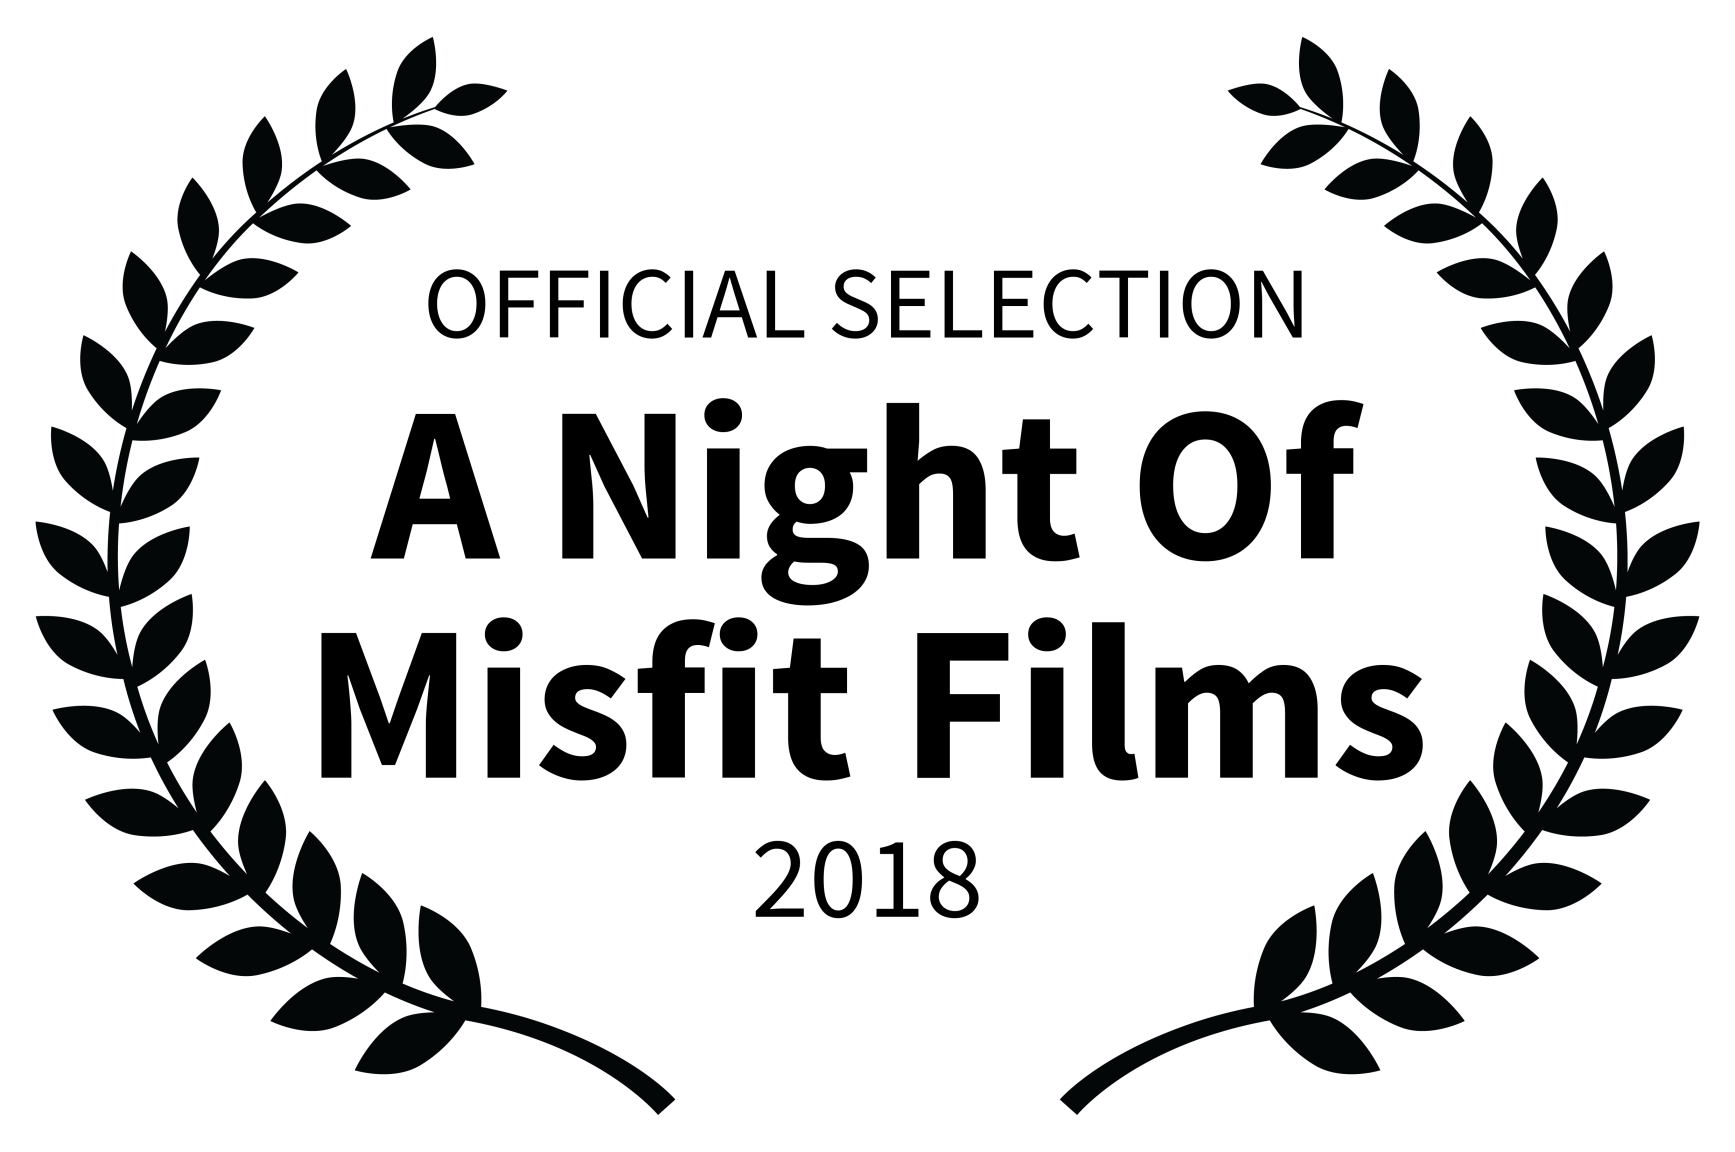 OFFICIAL SELECTION - A Night Of Misfit Films - 2018